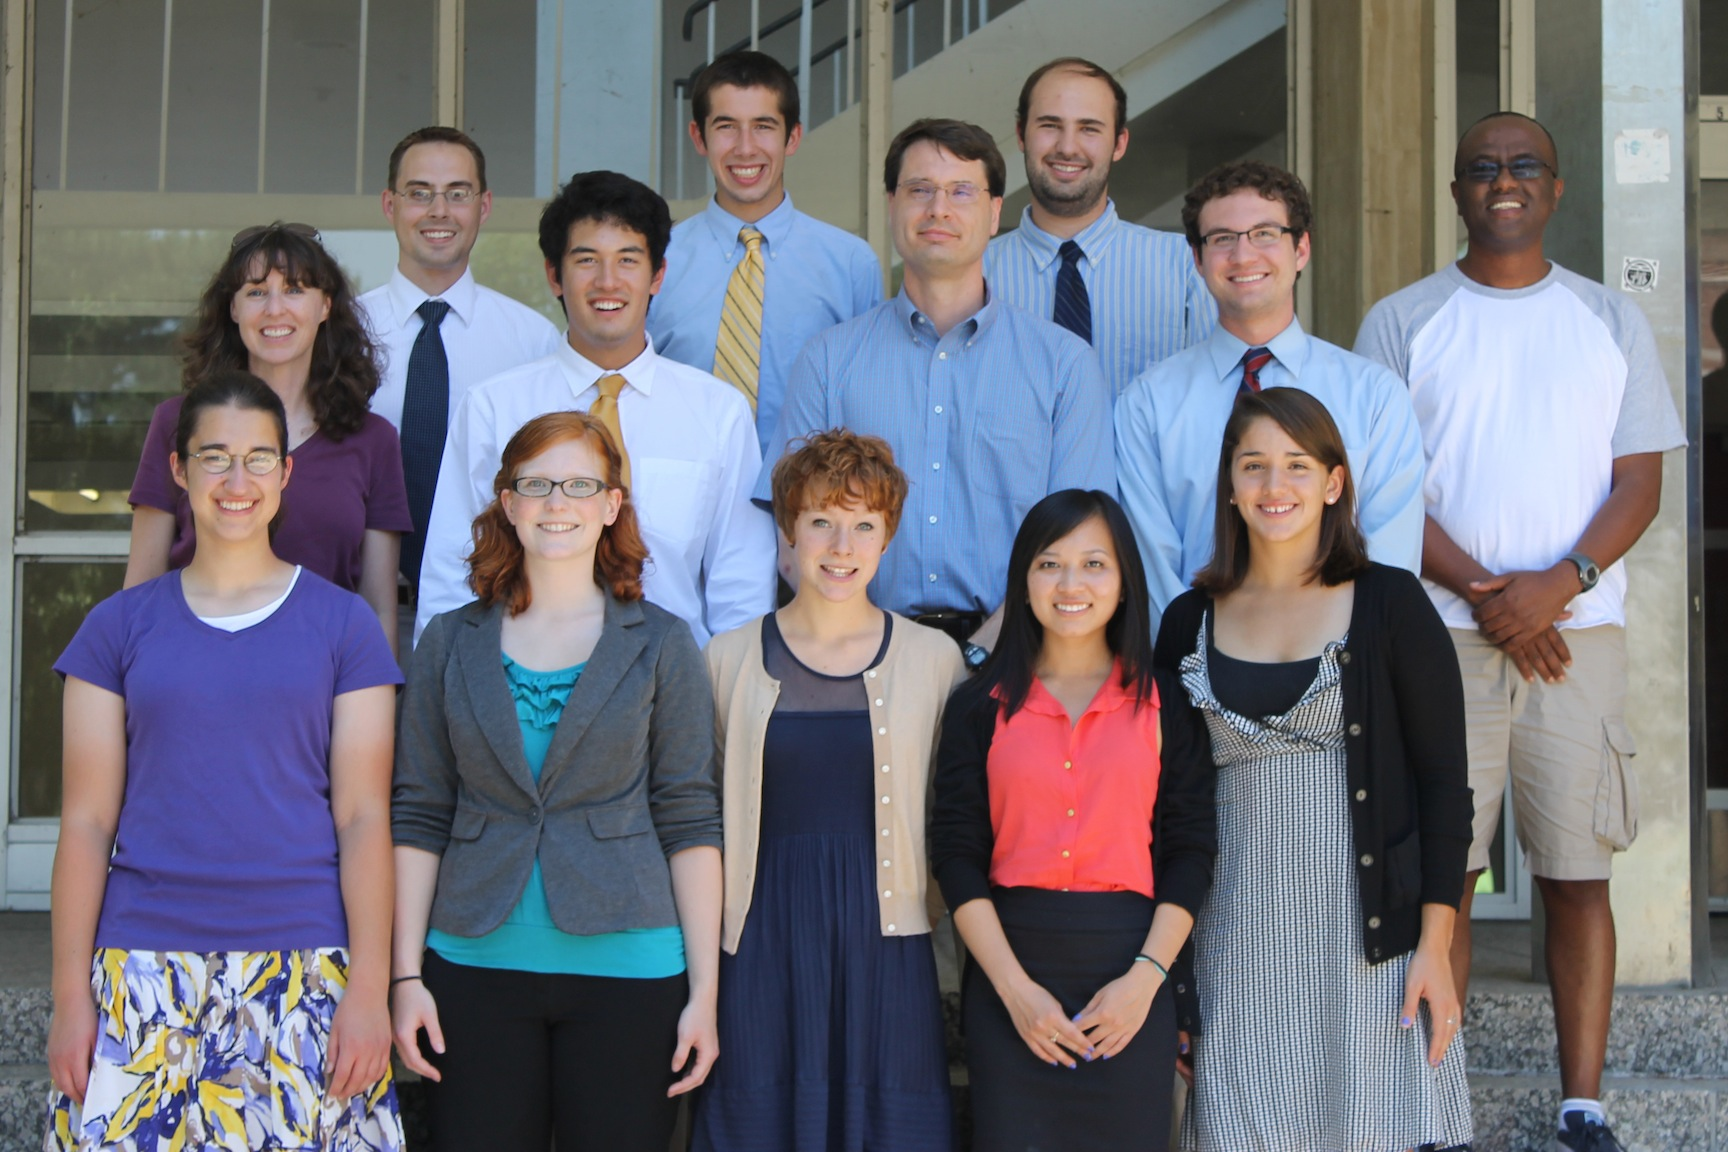 The 2012 REU group at the SUMMR conference at Michigan State University